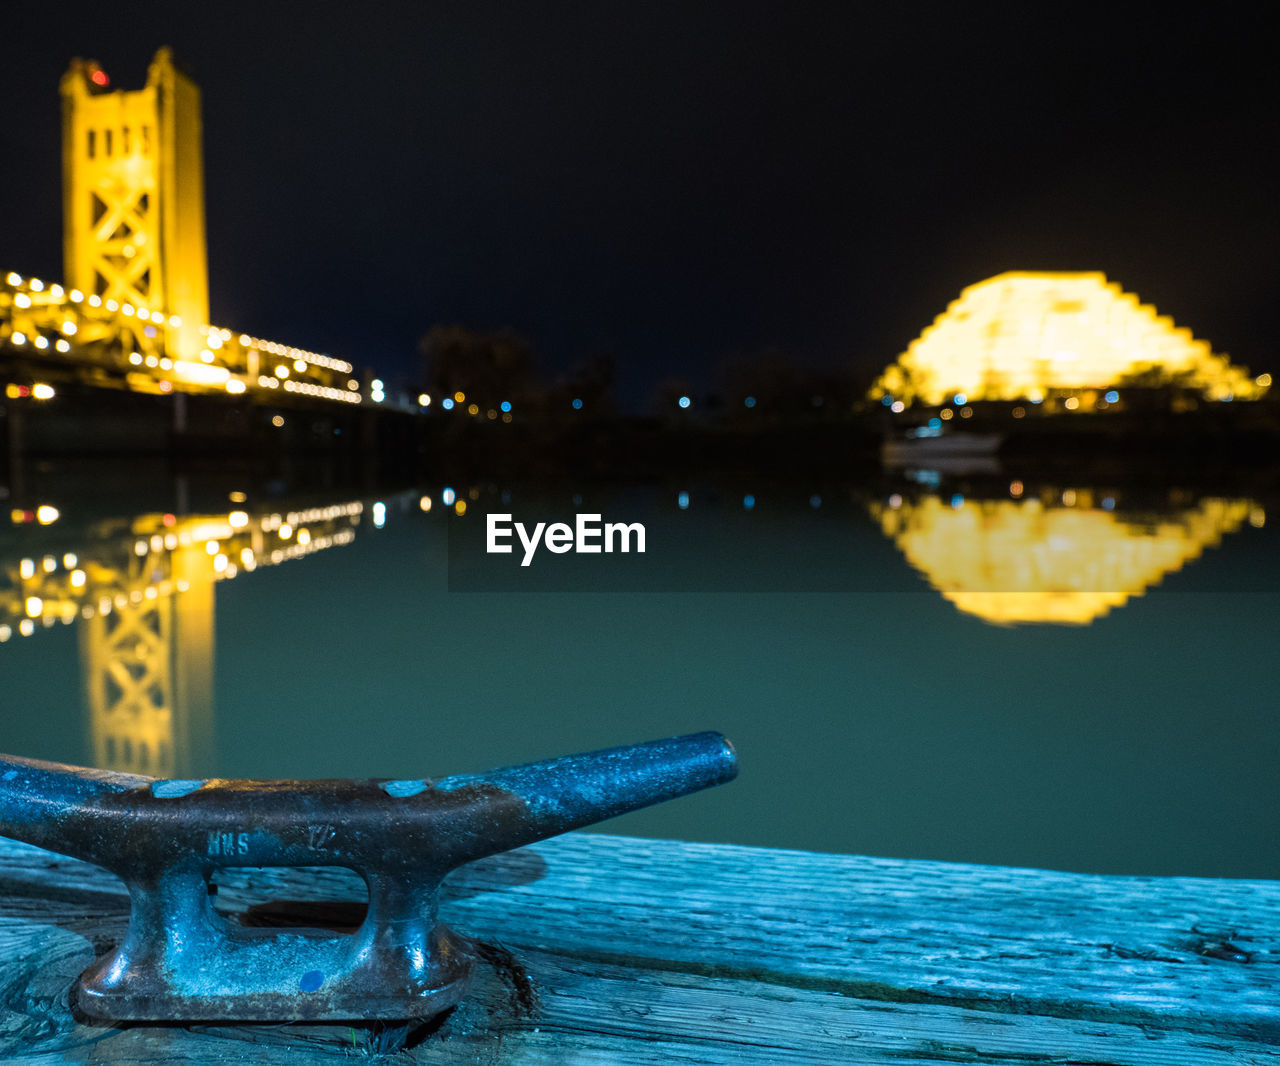 night, architecture, outdoors, water, no people, built structure, statue, illuminated, river, focus on foreground, close-up, history, building exterior, travel destinations, sculpture, sky, city, nature